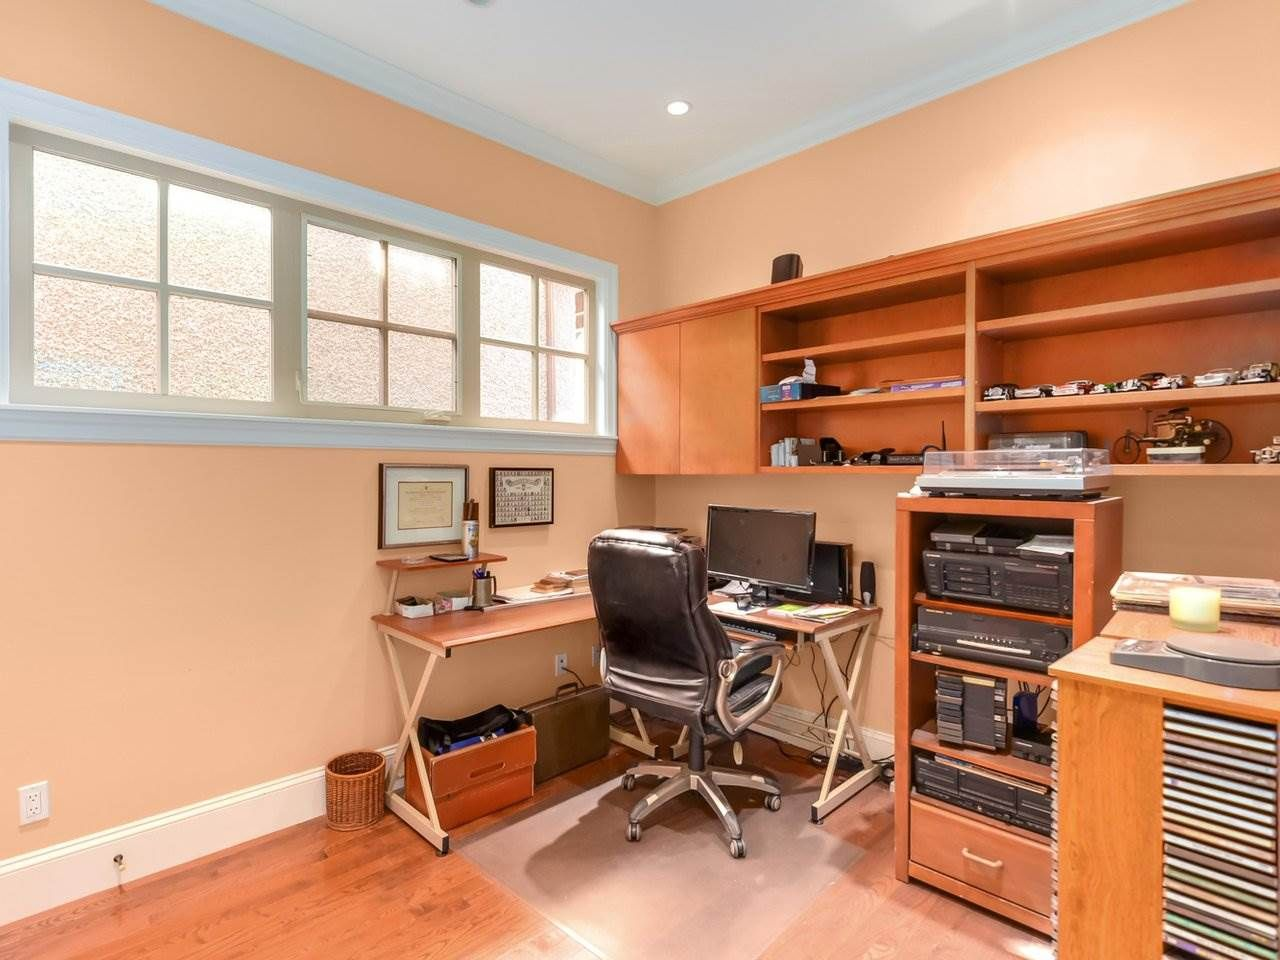 Photo 8: Photos: 694 W 19TH AVENUE in Vancouver: Cambie House for sale (Vancouver West)  : MLS®# R2186365